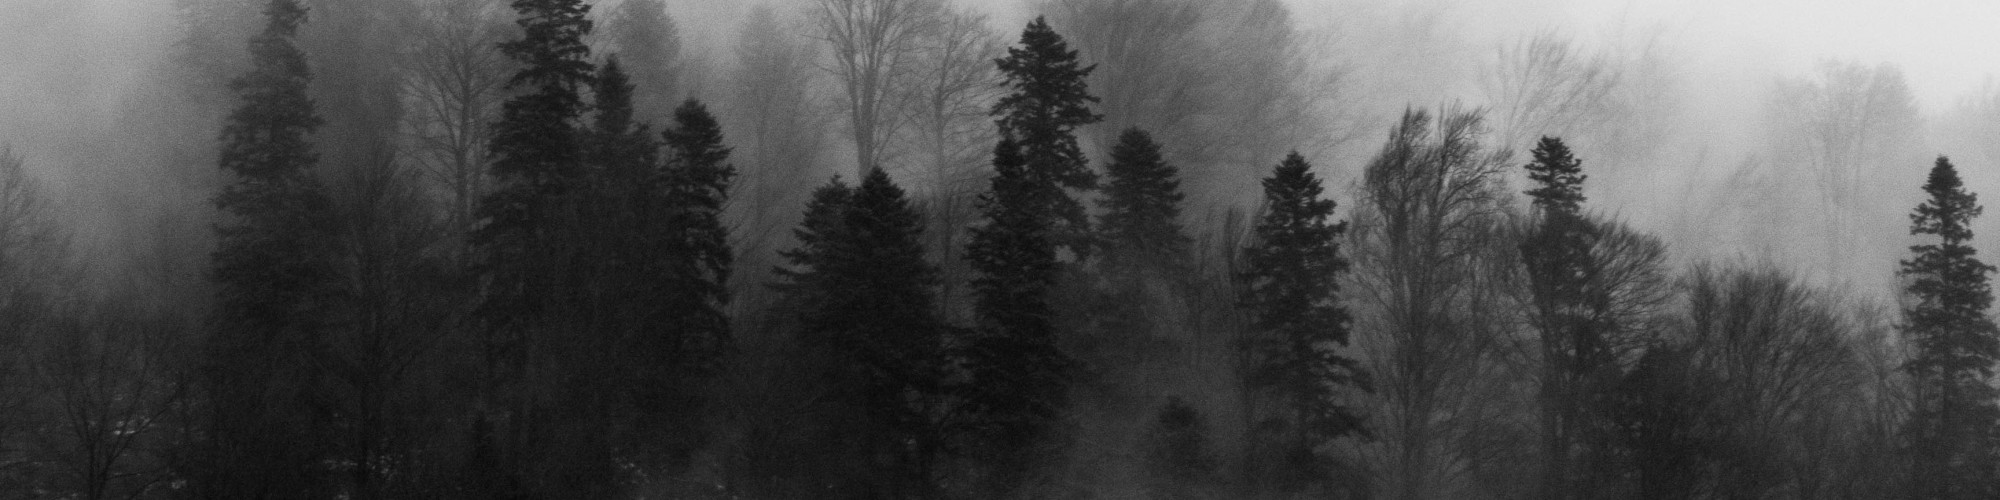 black-and-white-fog-foggy-1061623